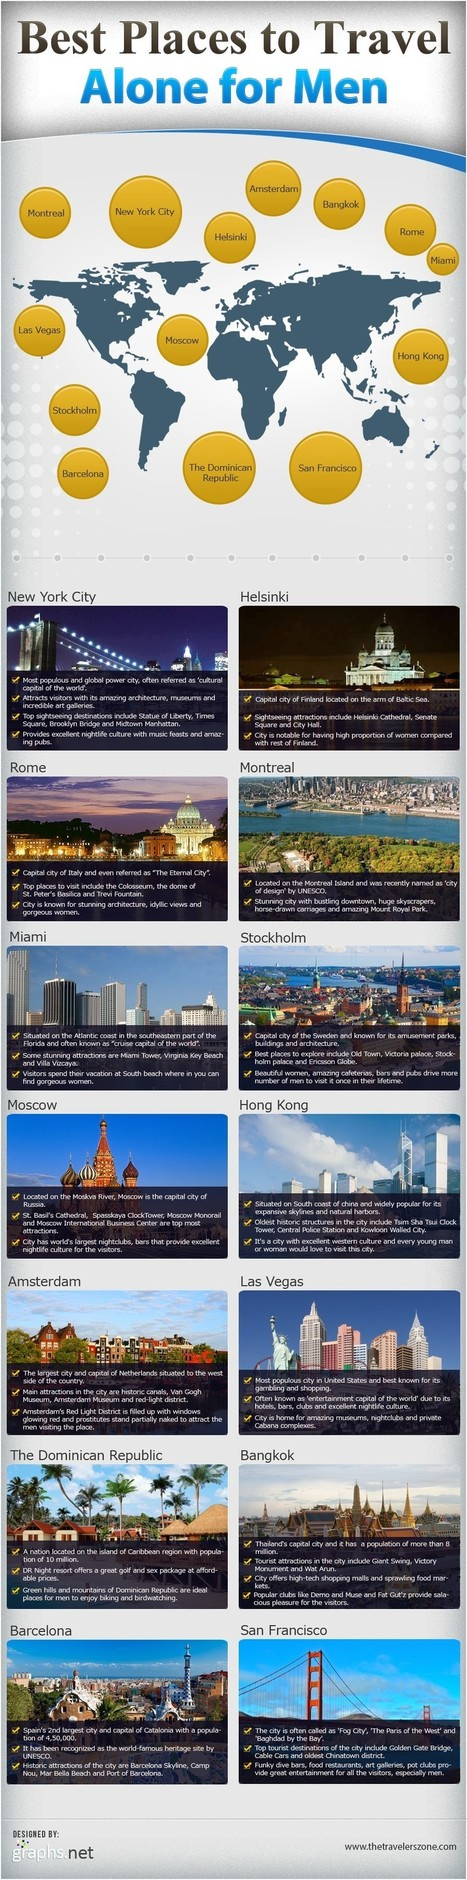 Top 14 Places to Travel for Men in the World | All Infographics | All Infographics | Scoop.it